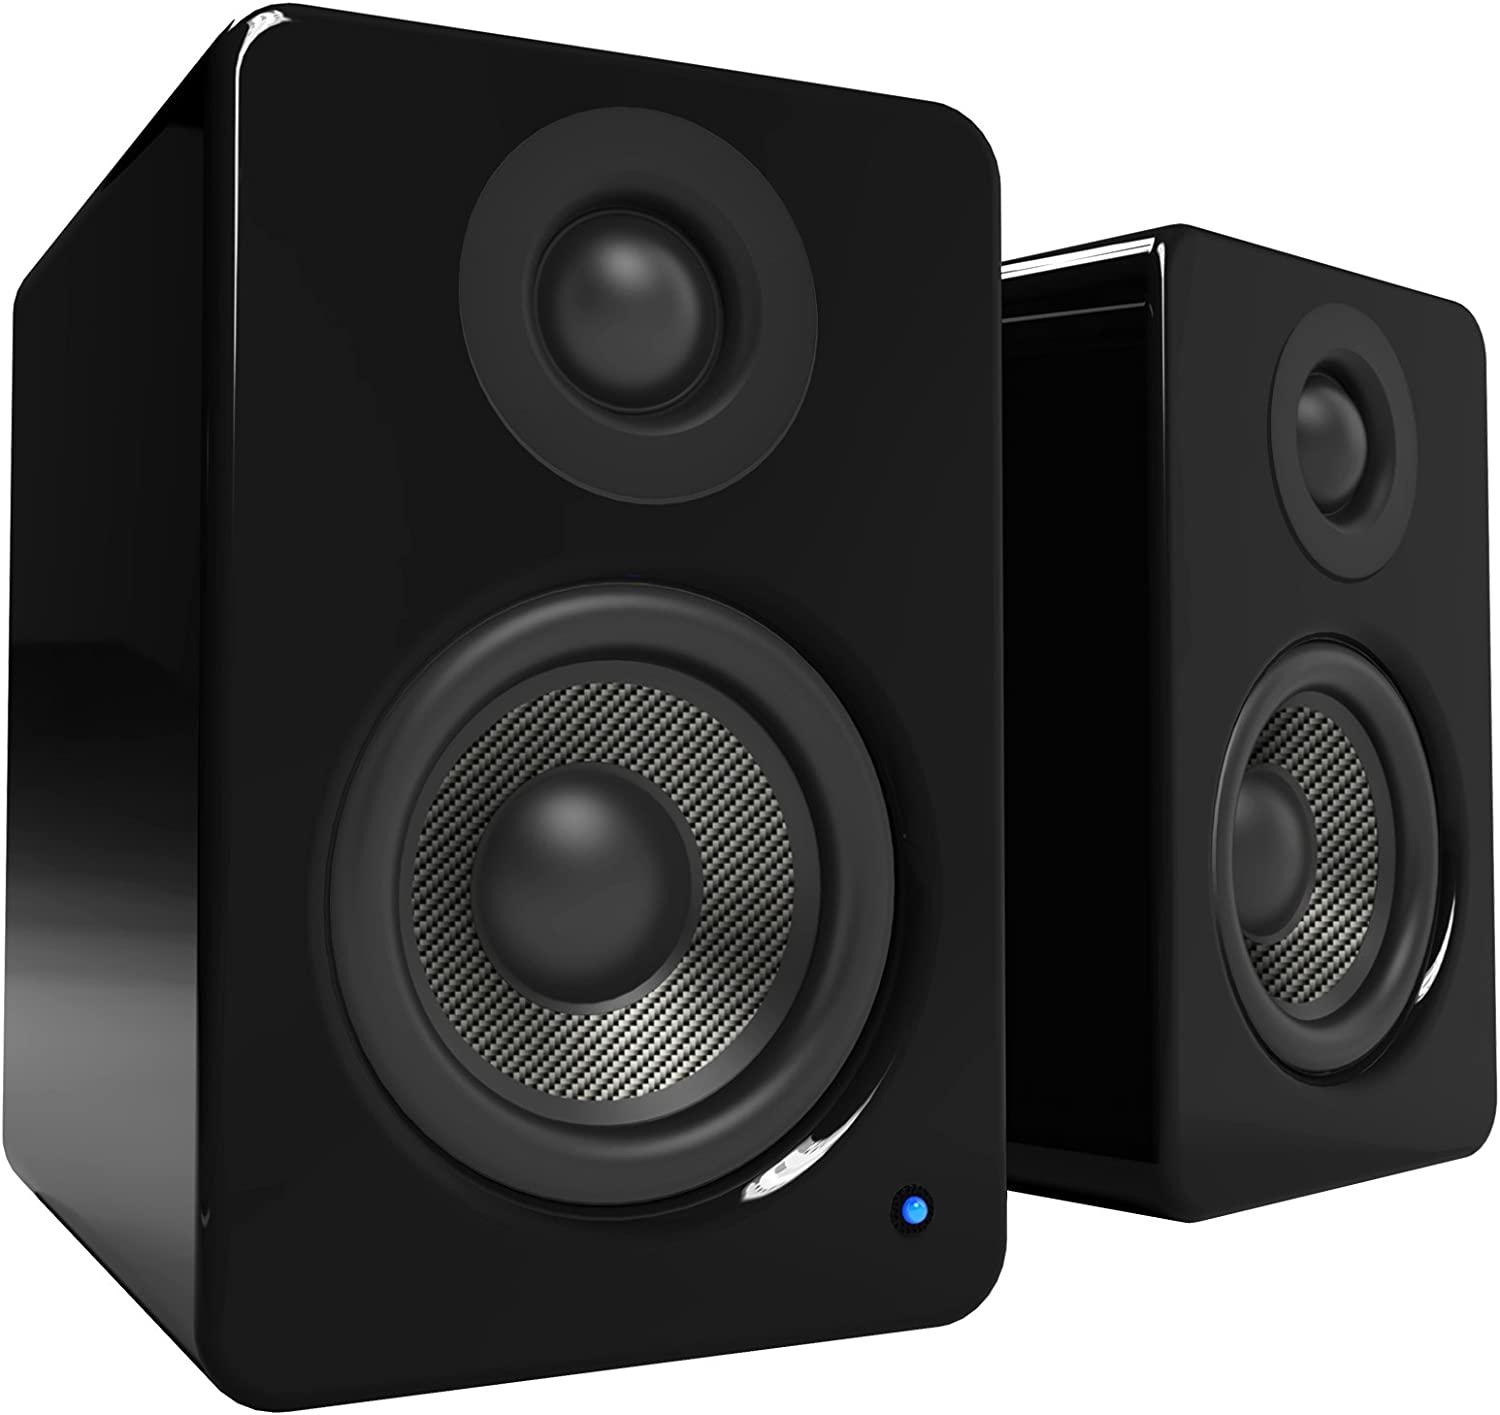 "Kanto 2 Channel Powered PC Gaming Desktop Speakers – 3"" Composite Drivers 3/4"" Silk Dome Tweeter – Class D Amplifier - 100 Watts - Built-in USB DAC - Subwoofer Output - YU2GB (Gloss Black)"